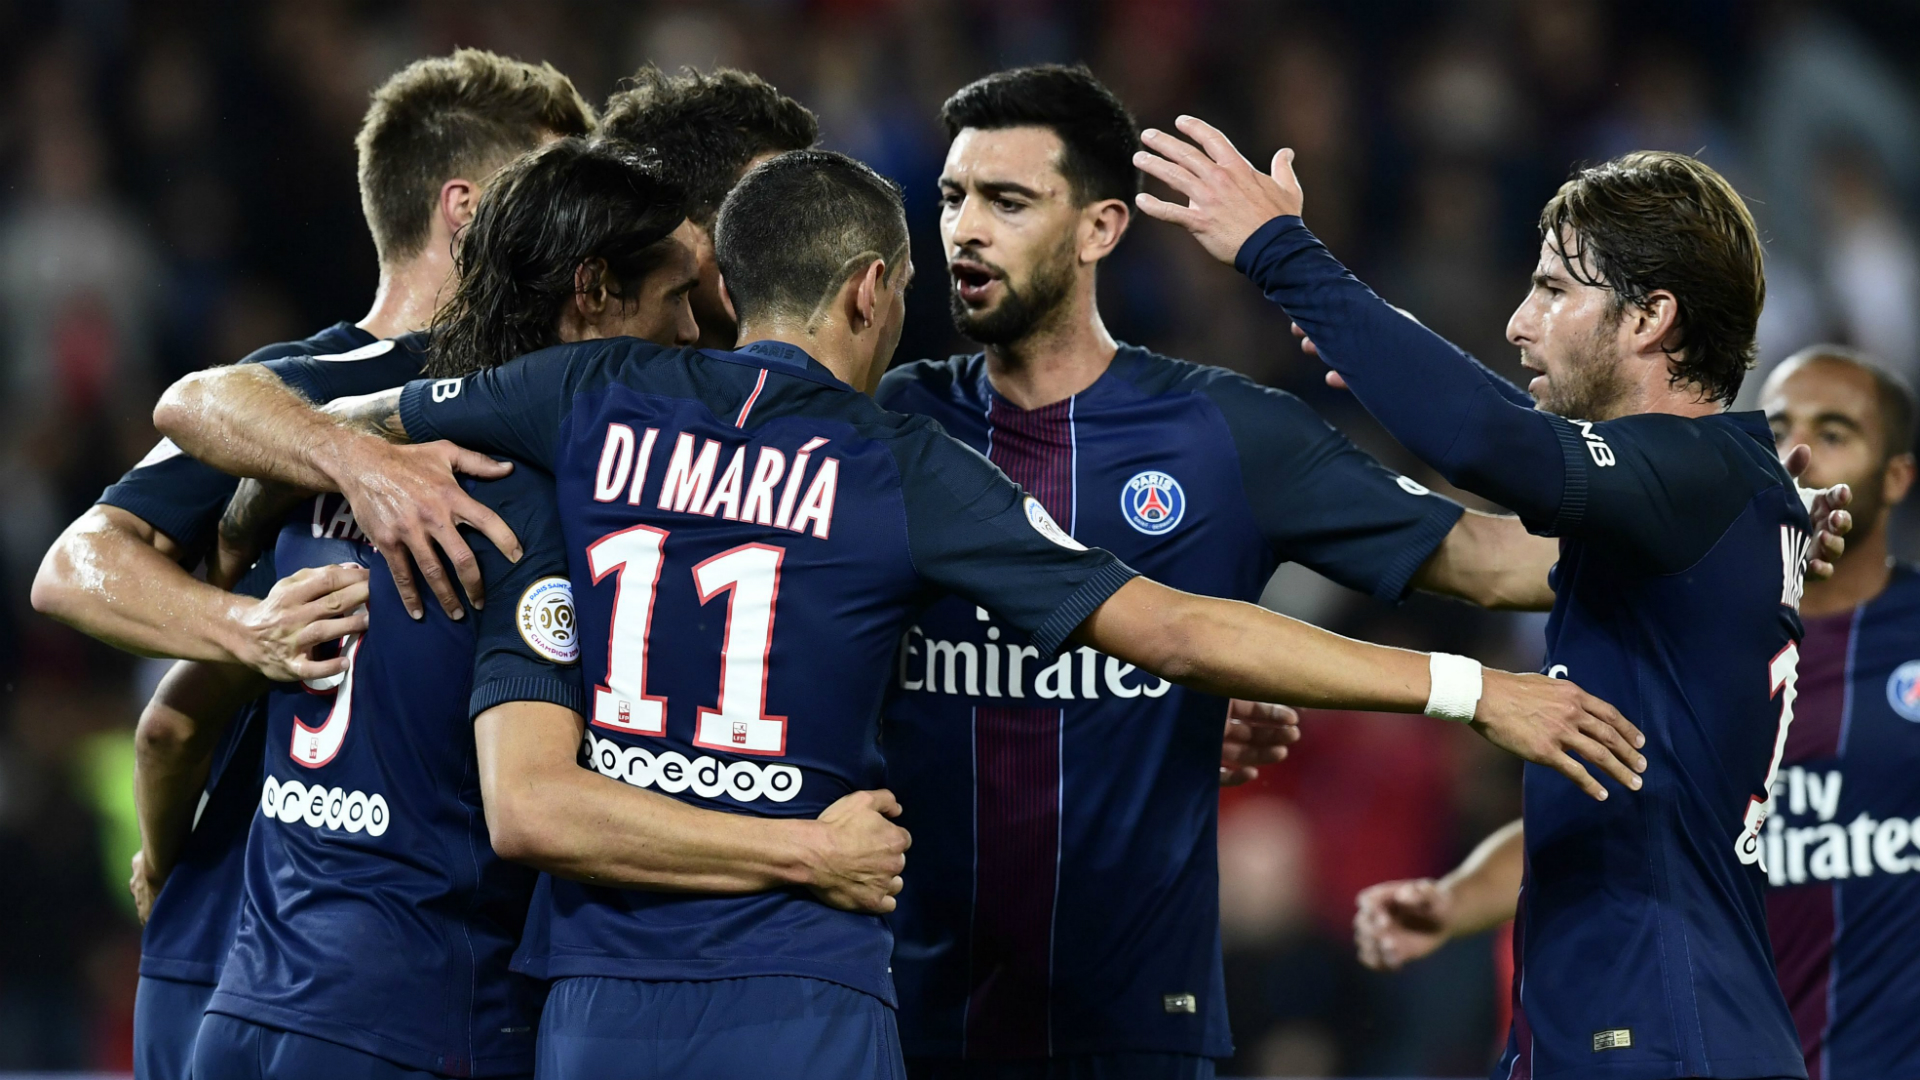 Cavani and Di Maria on target as PSG take Ligue 1 lead